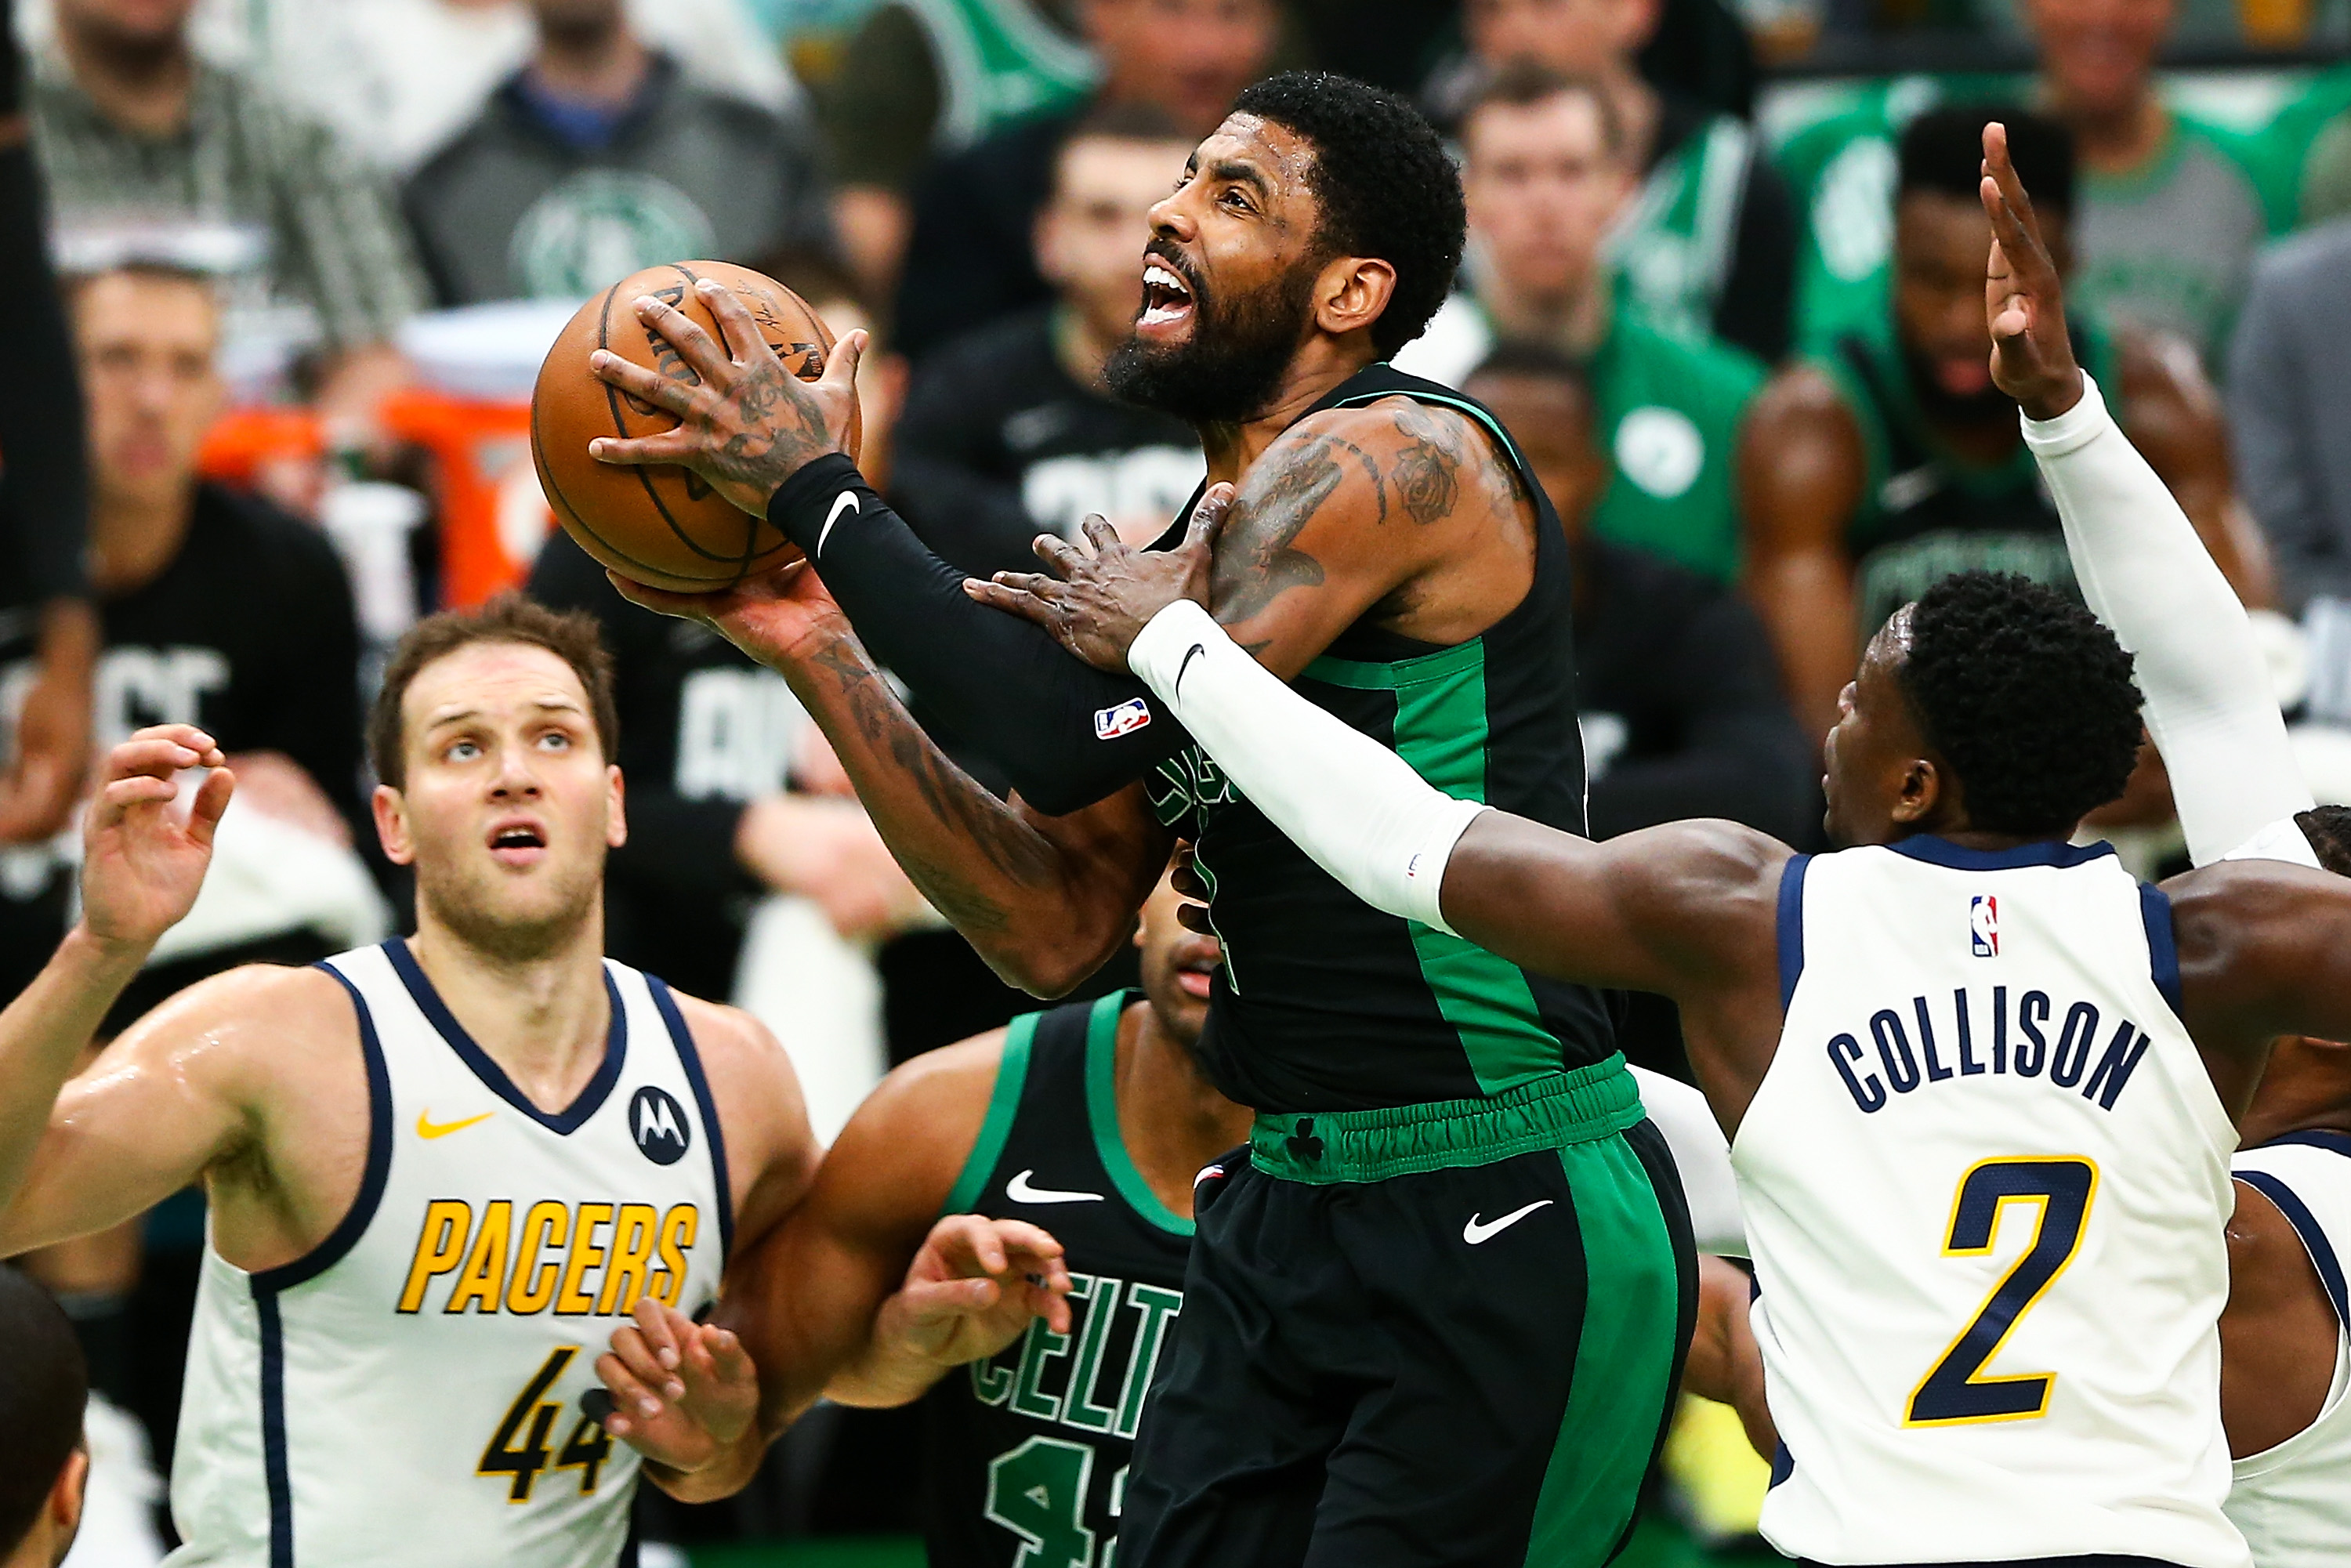 eed70802743e Kyrie Irving  taking full advantage  of playoff opportunity with Celtics